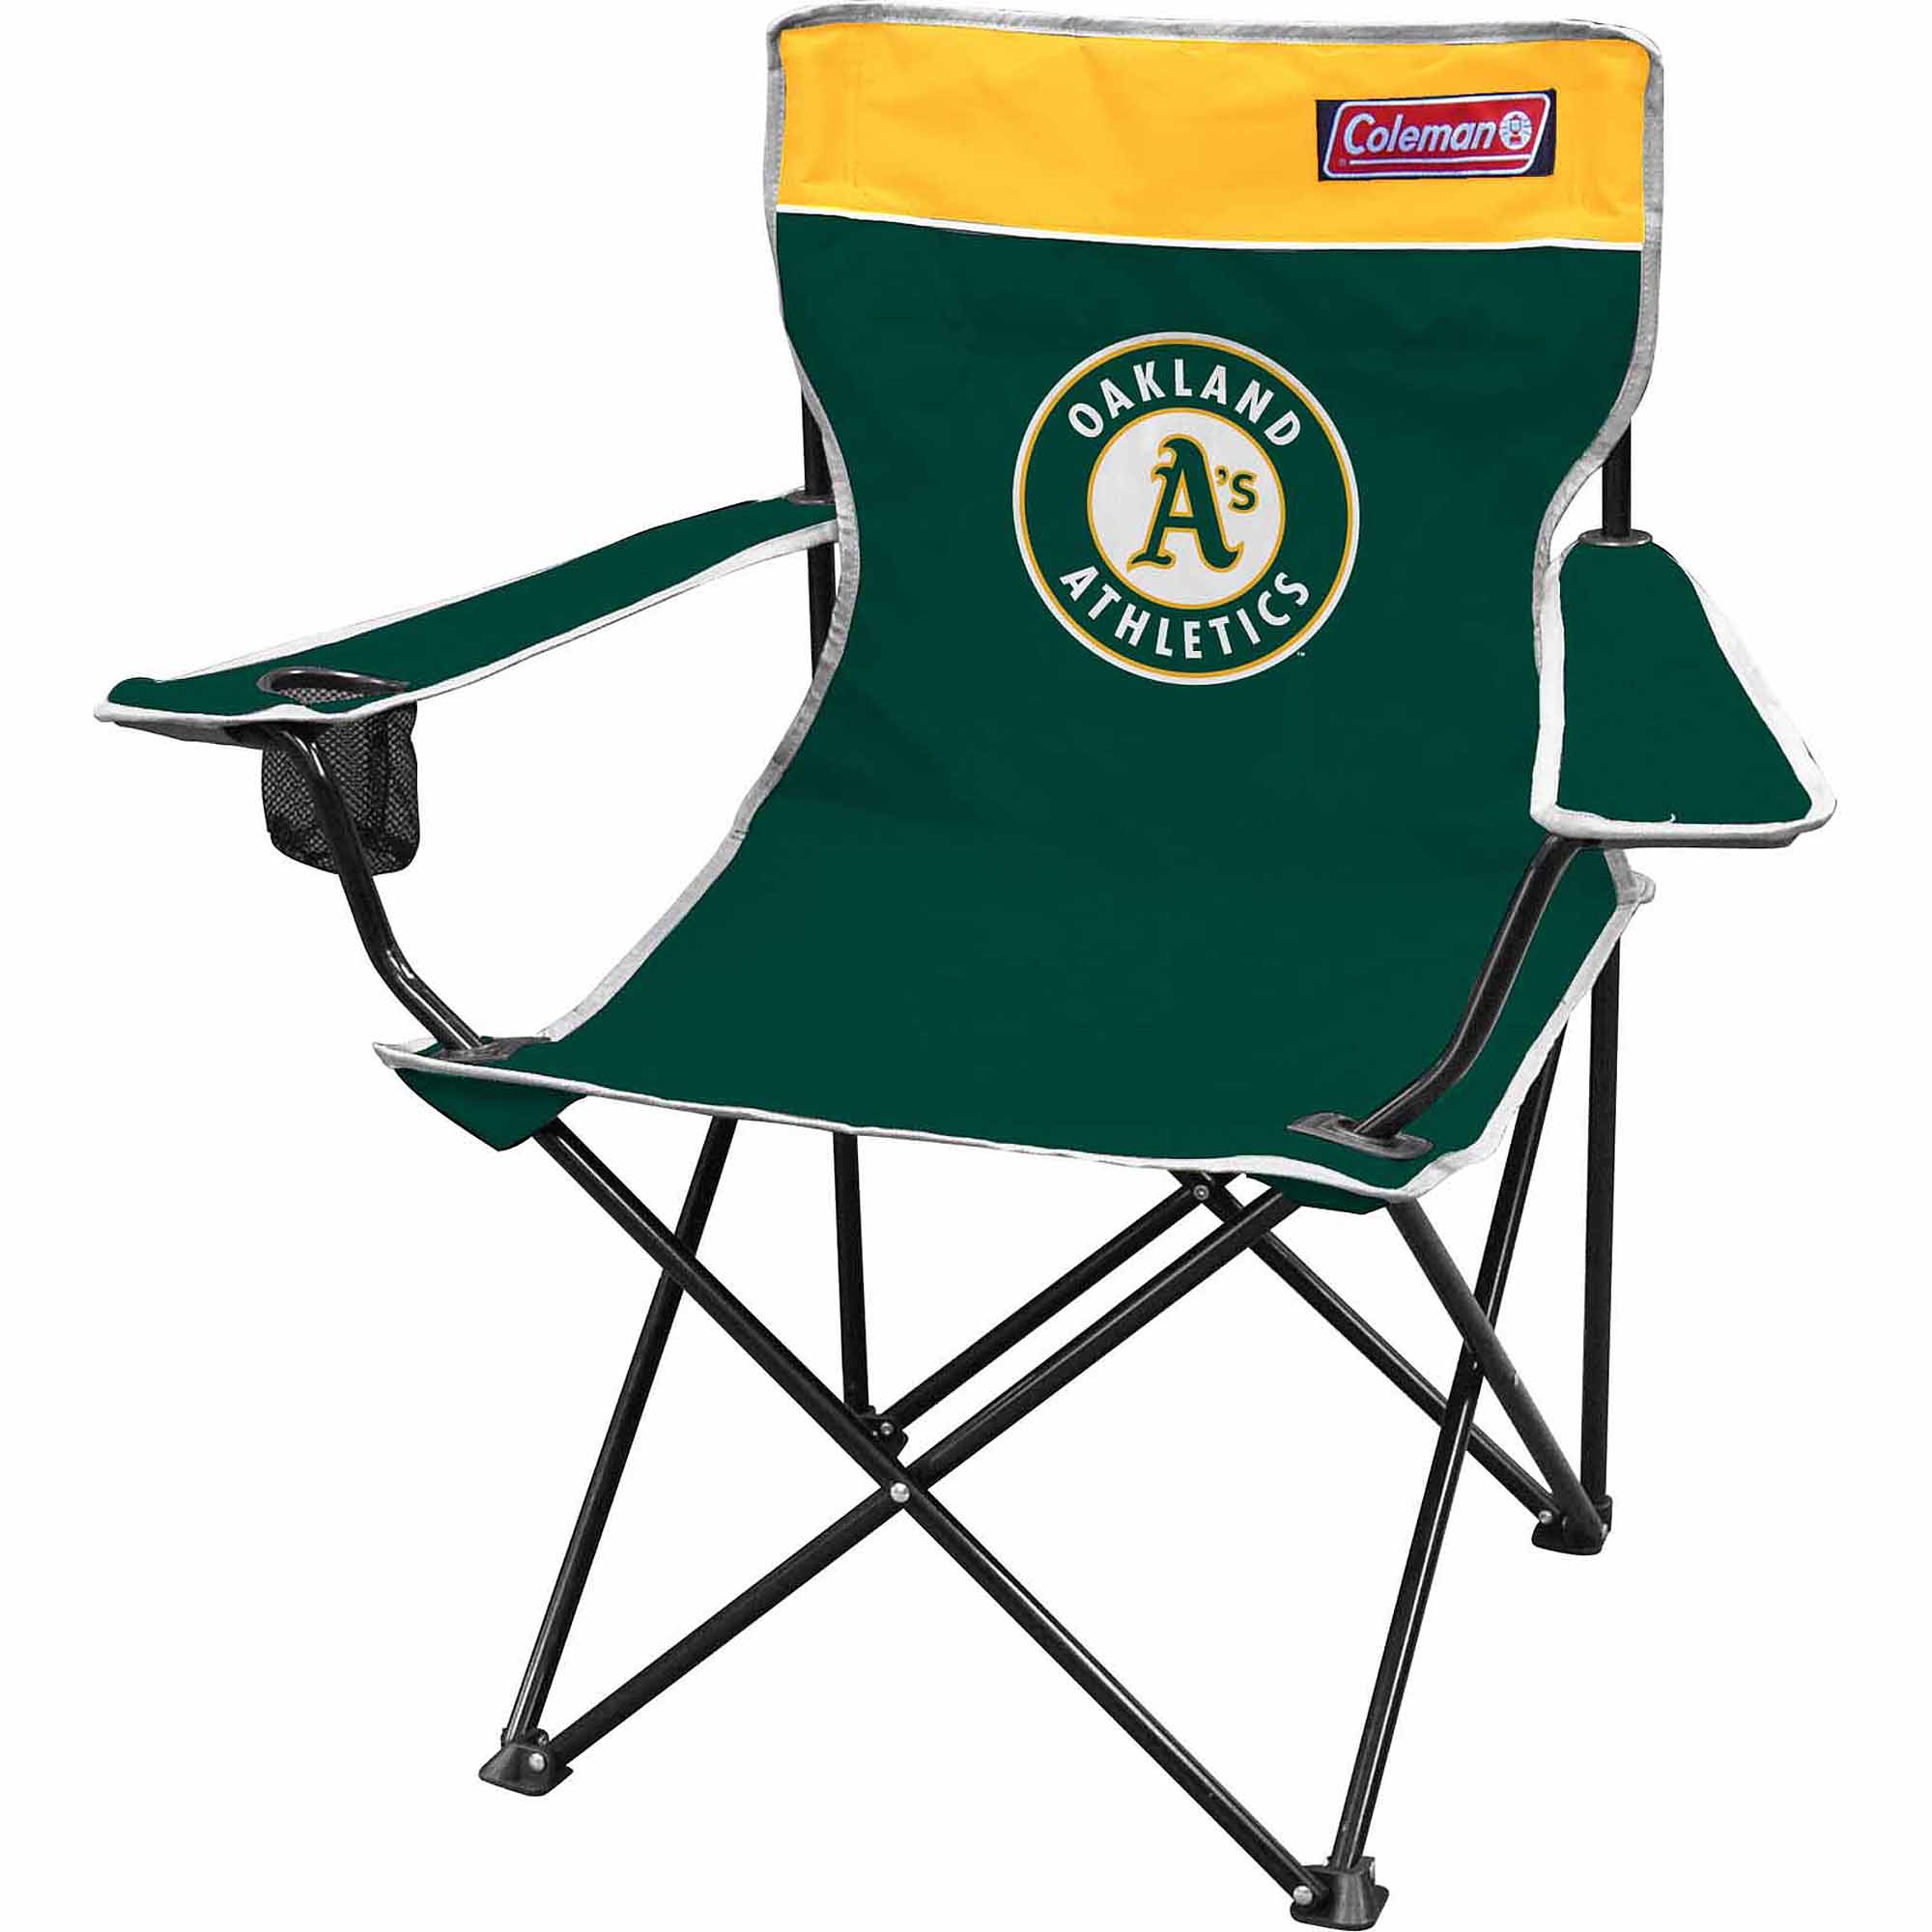 Coleman MLB Oakland Athletics Quad Chair